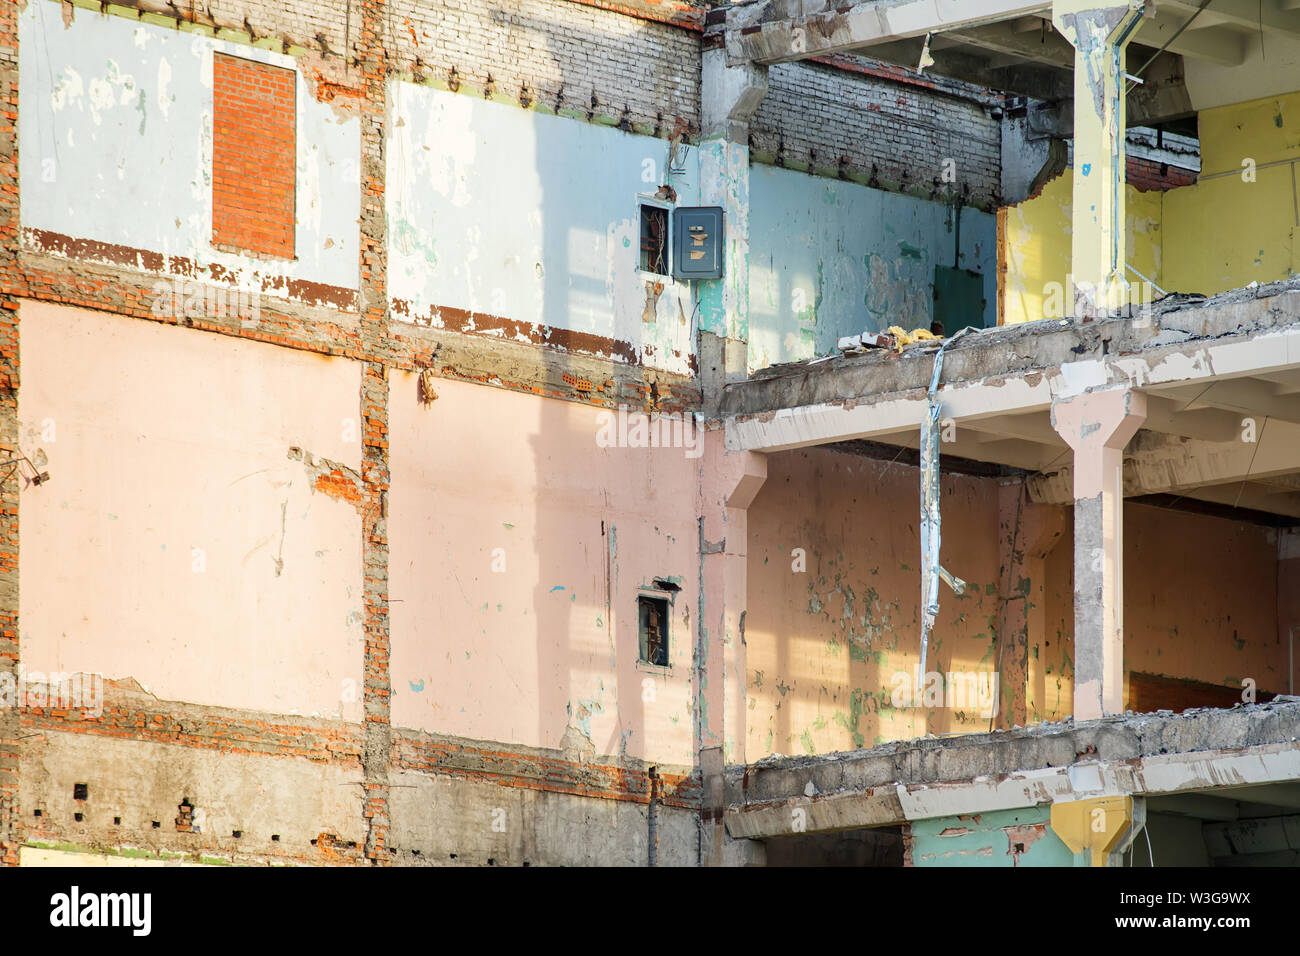 Modern partially destroyed industrial building with colored walls. Demolition or destruction theme - Stock Image